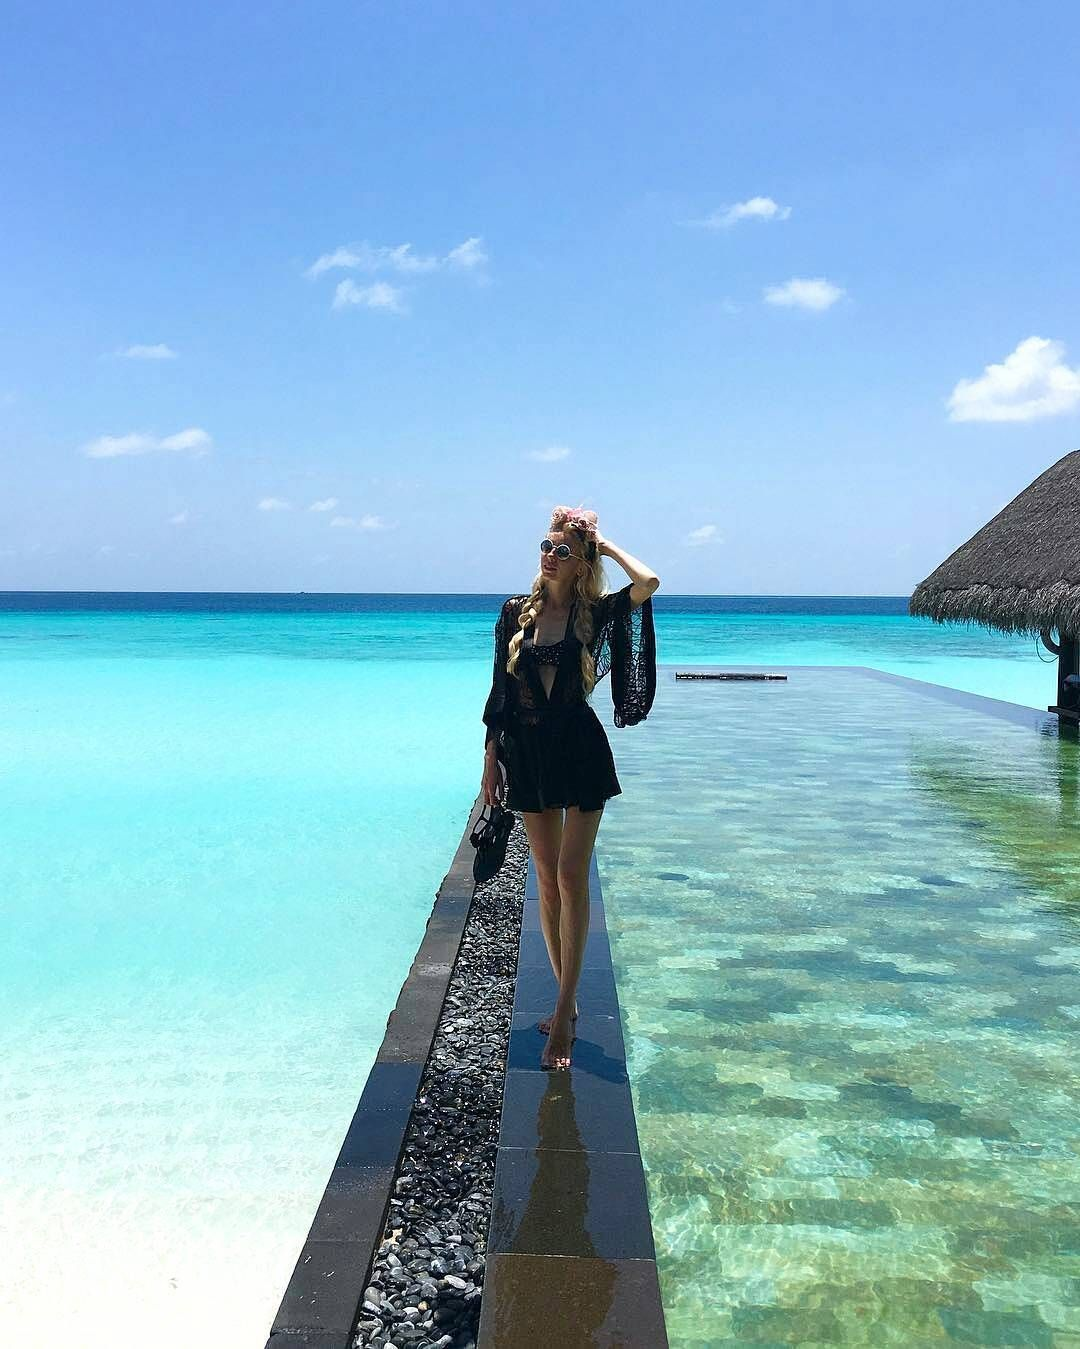 Maldives Island Beaches: The Maldives Islands - One & Only Reethirah